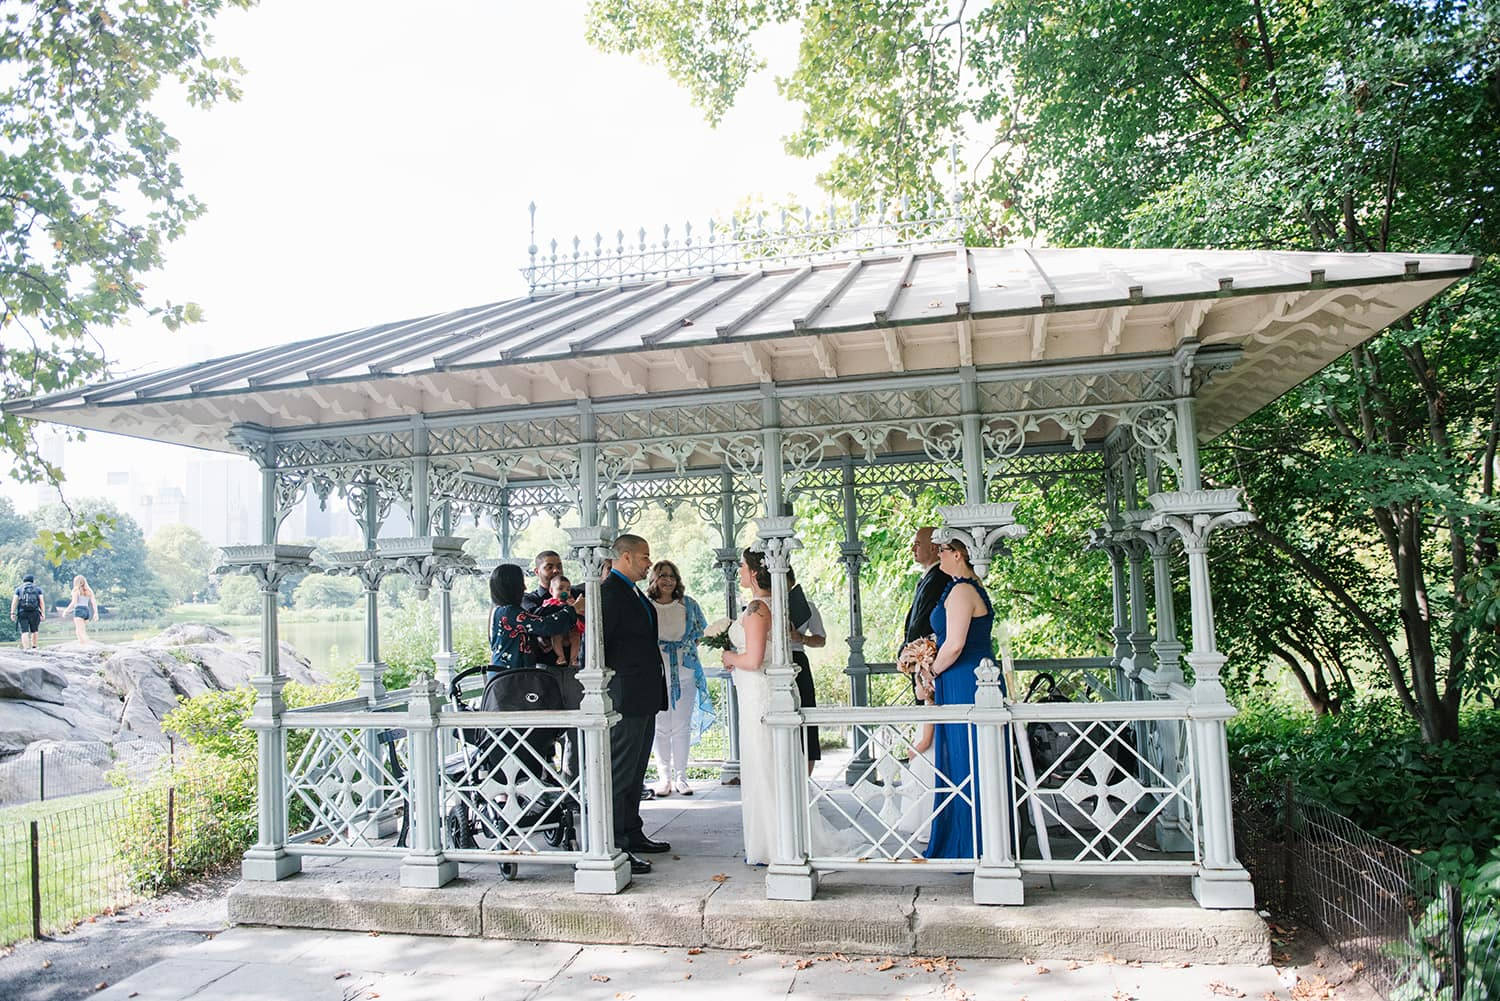 Ladies Pavilion wedding in Central Park, NYC